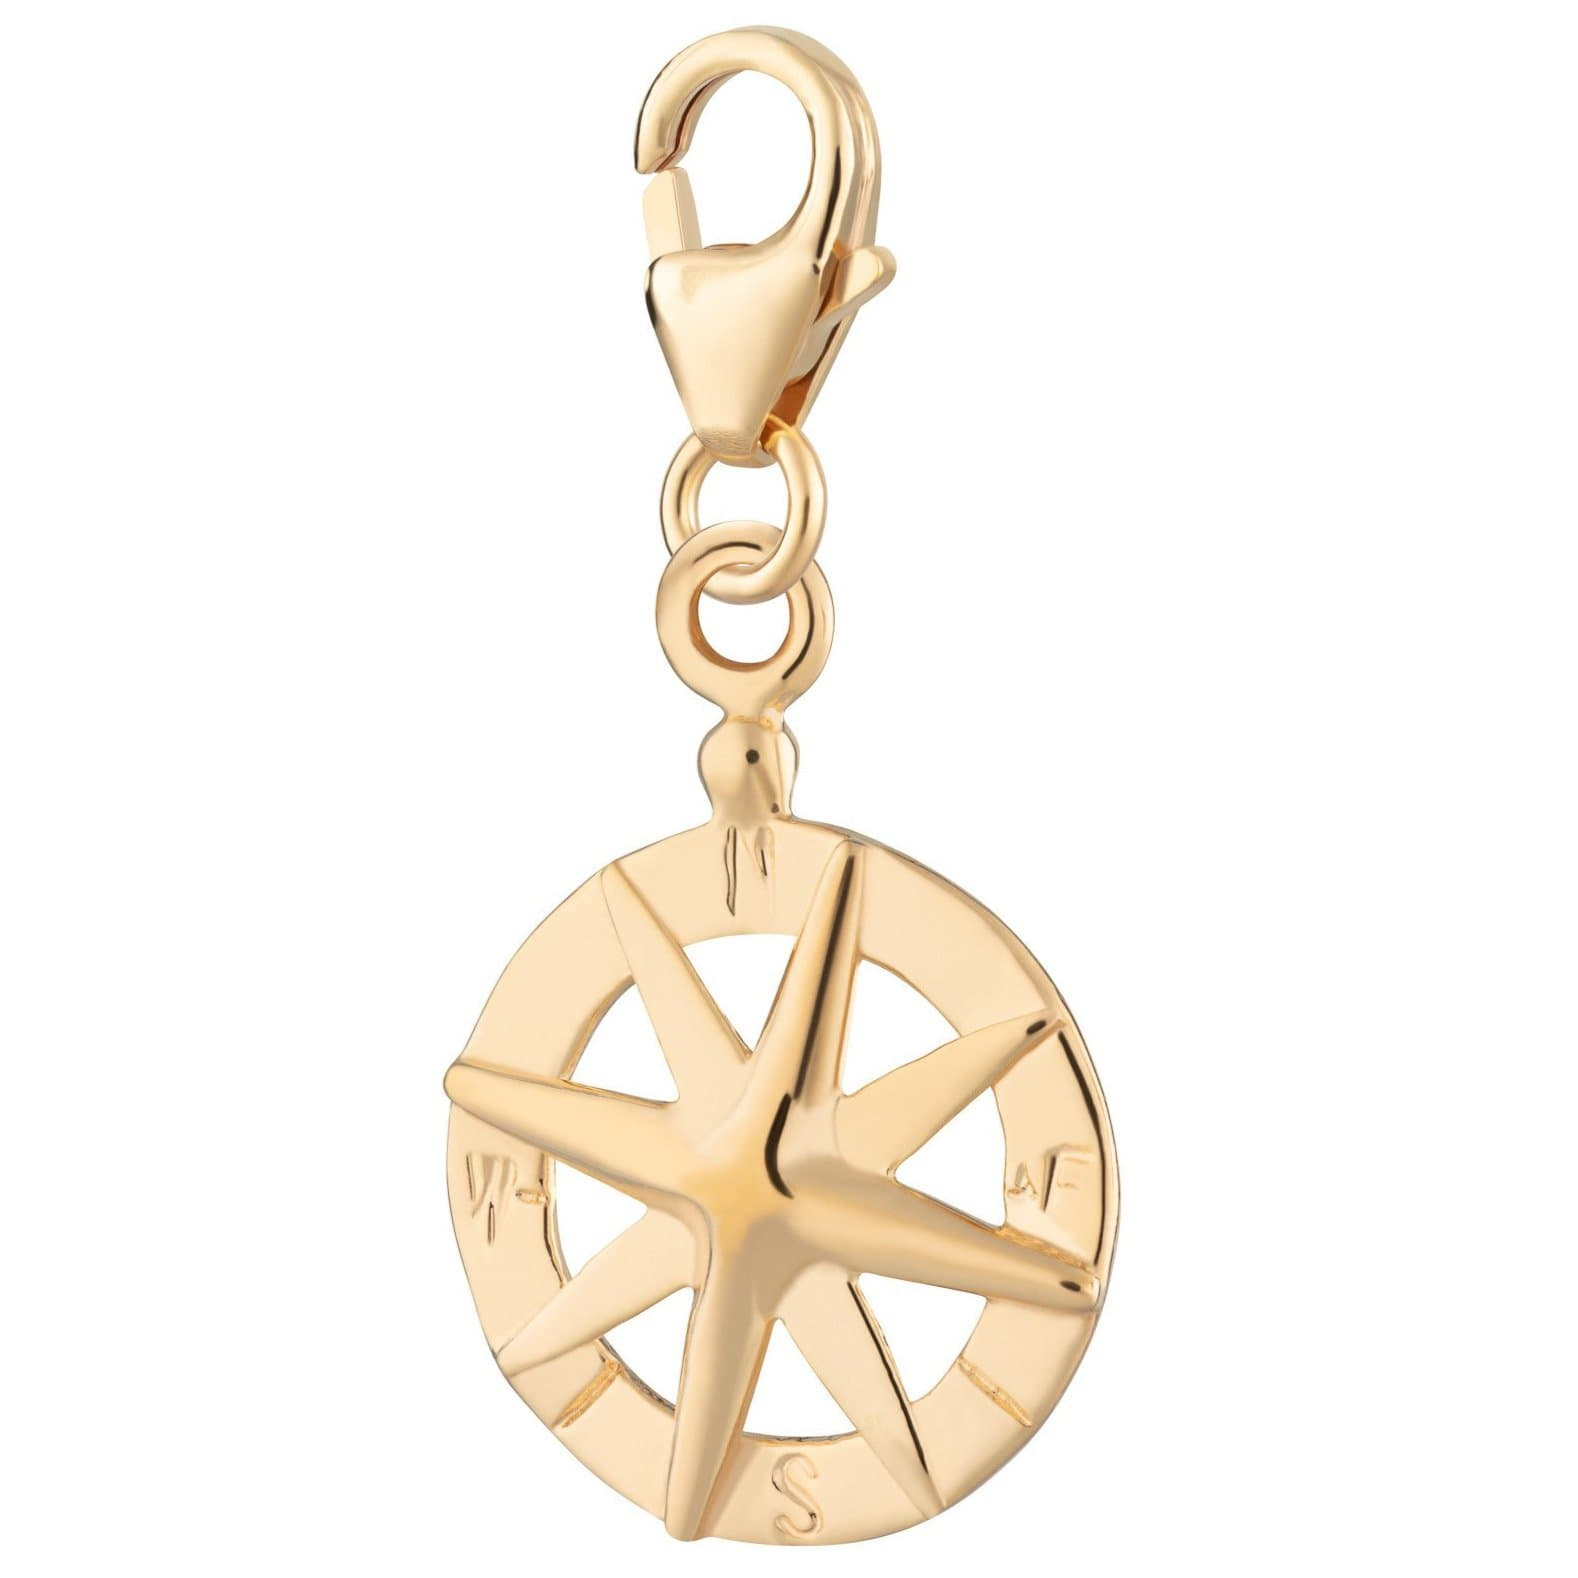 Gold Plated Compass Charm - Lily Charmed